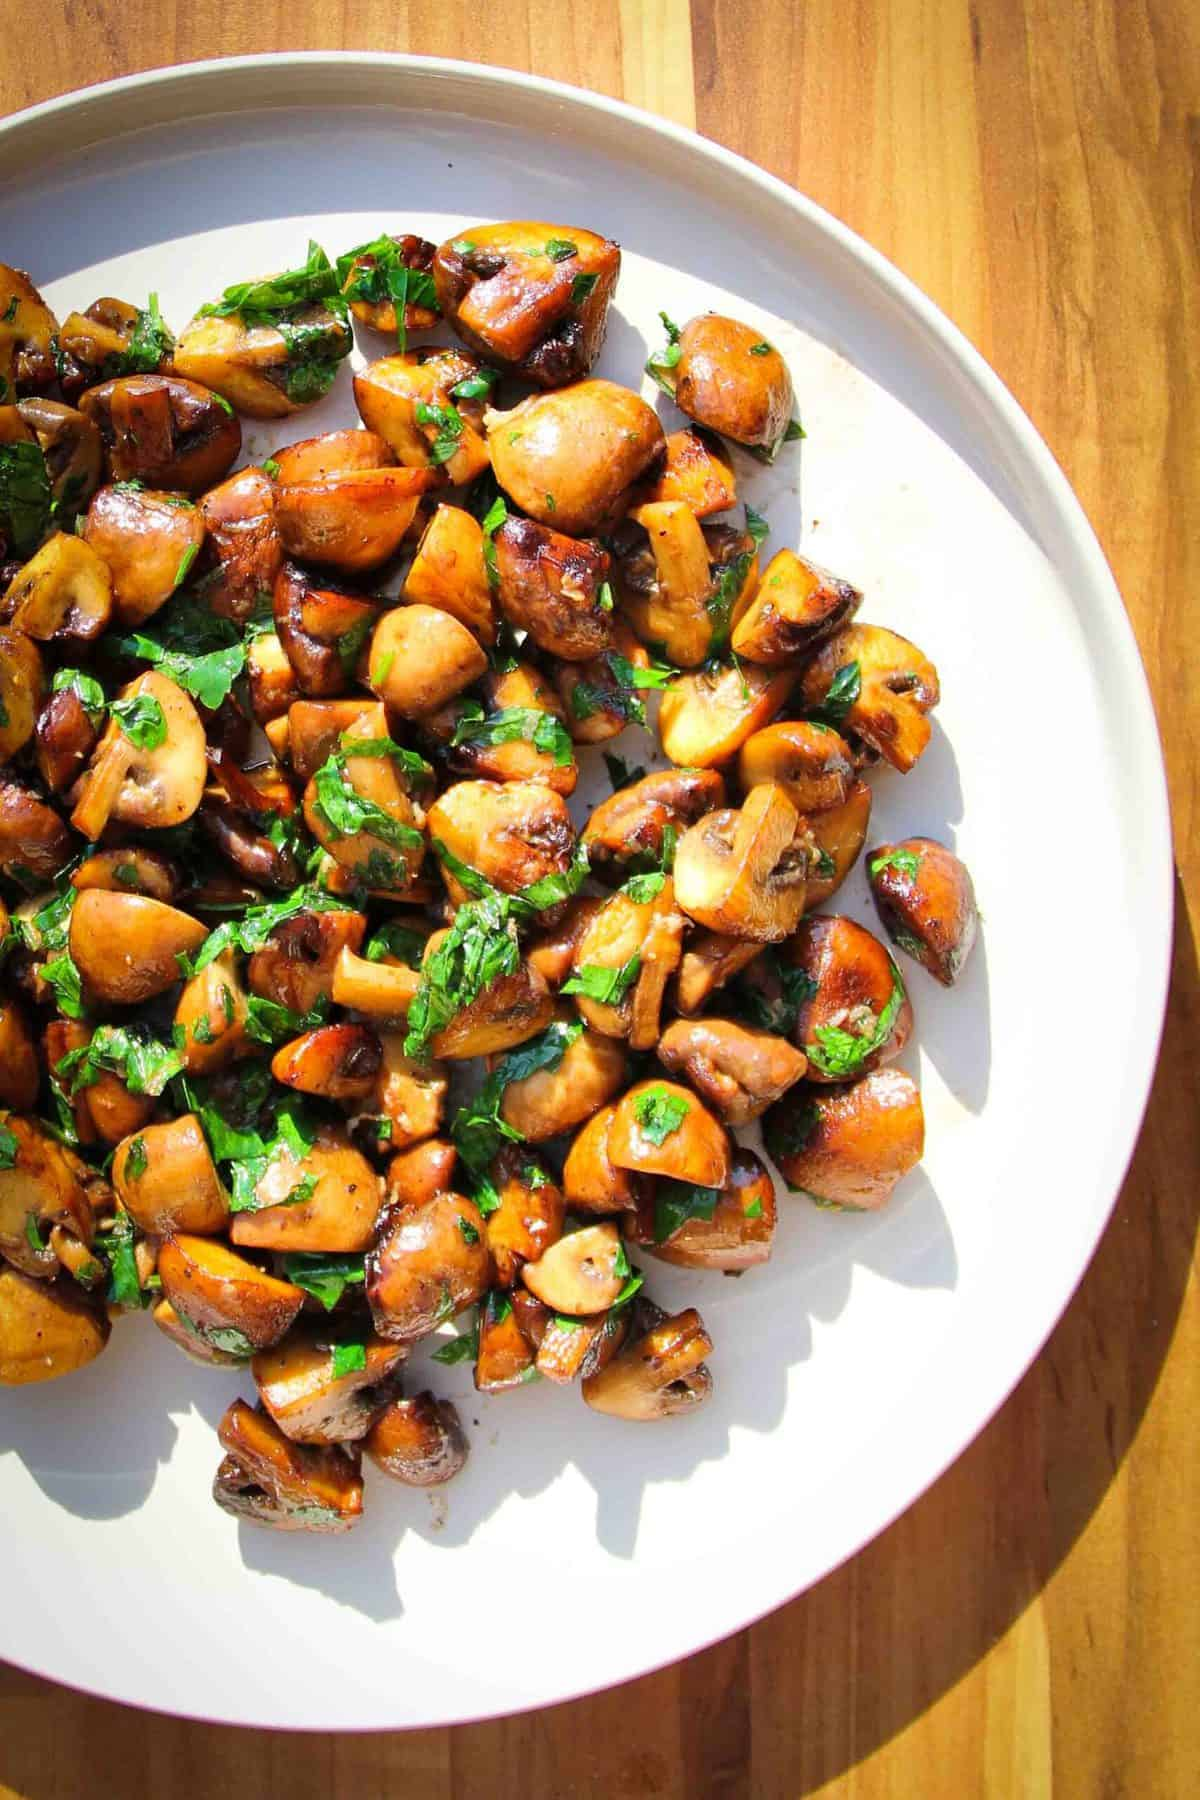 Mushrooms with garlic, butter, parsley and lemon on a plate.